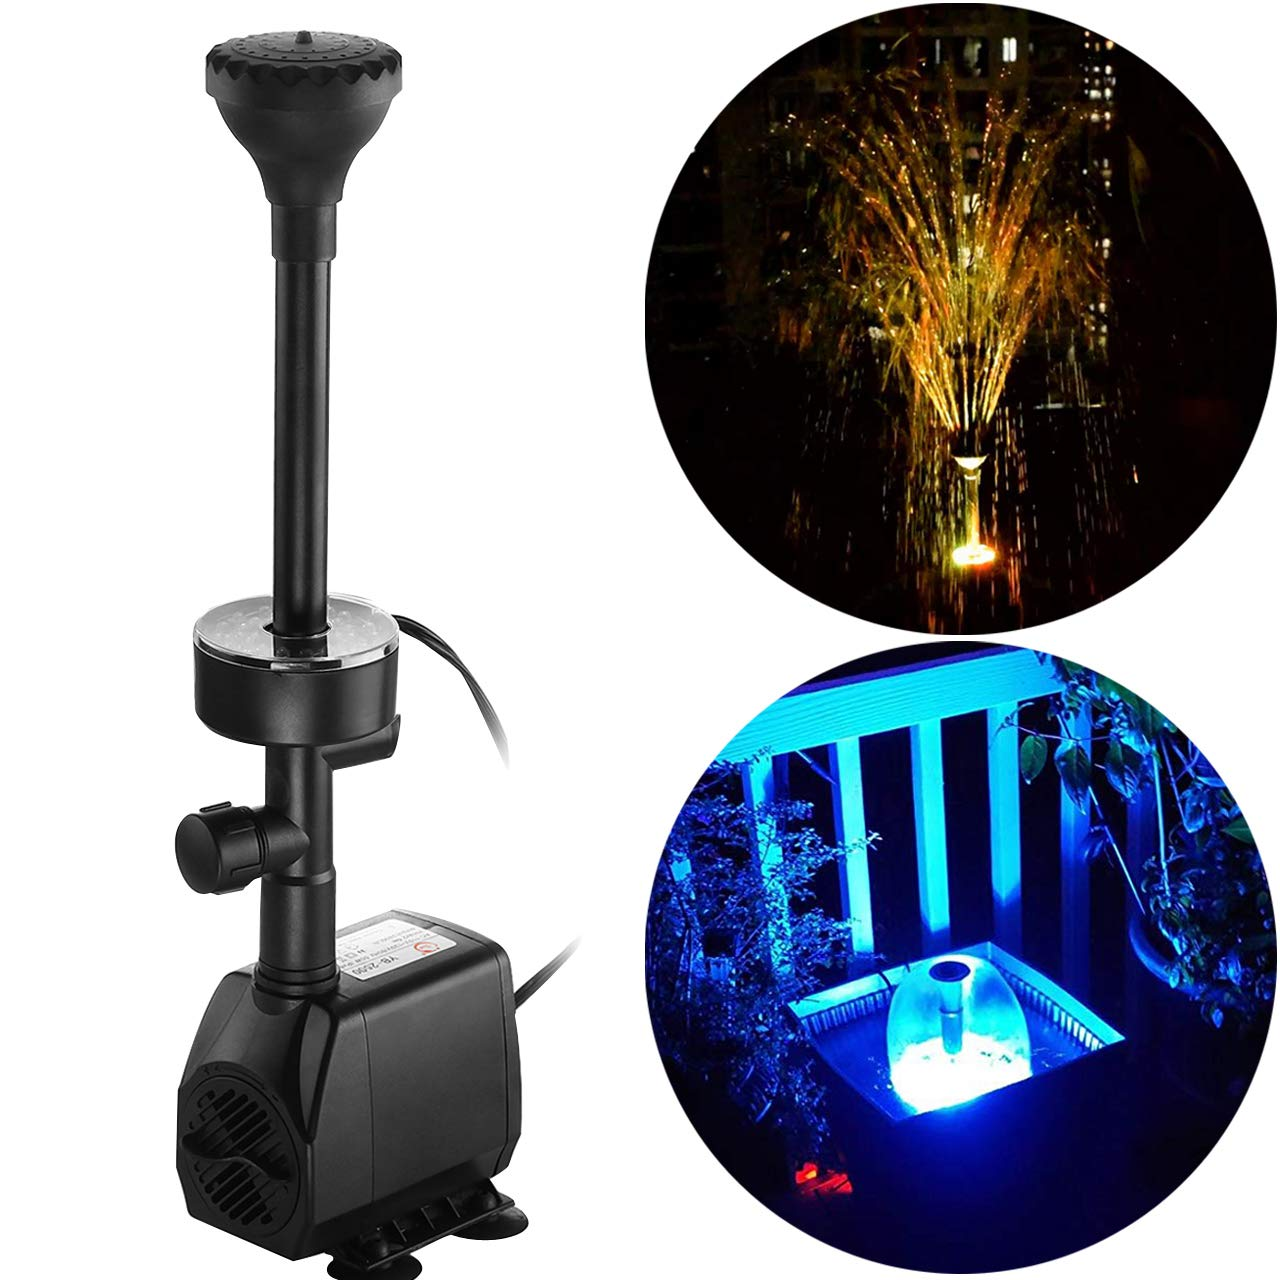 YADICO 730GPH (2800L/H, 110V/55W) Submersible Pump Fountain with RGB Color Changing Ring Lighting Water Fountain Spray Nozzles Kit Multiple Decoration for Garden Pond Indoor and Outdoor Landscape by COODIA